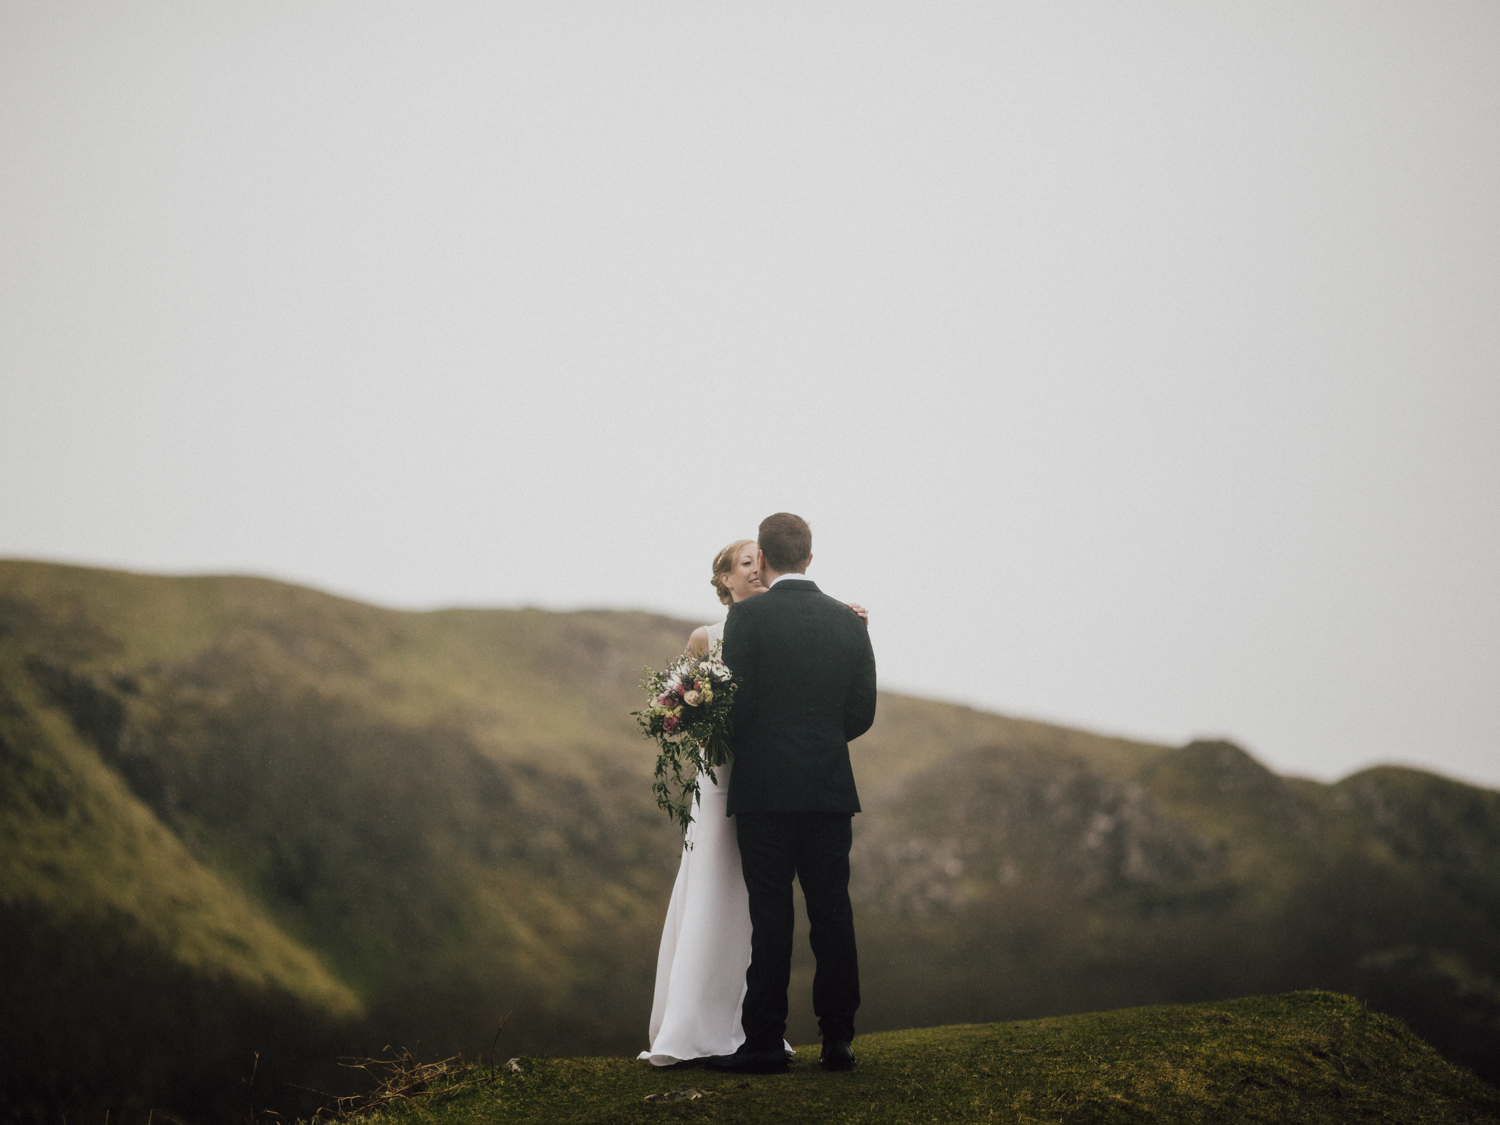 capyture-wedding-photographer-destination-elopement-isle-skye-scotland-323